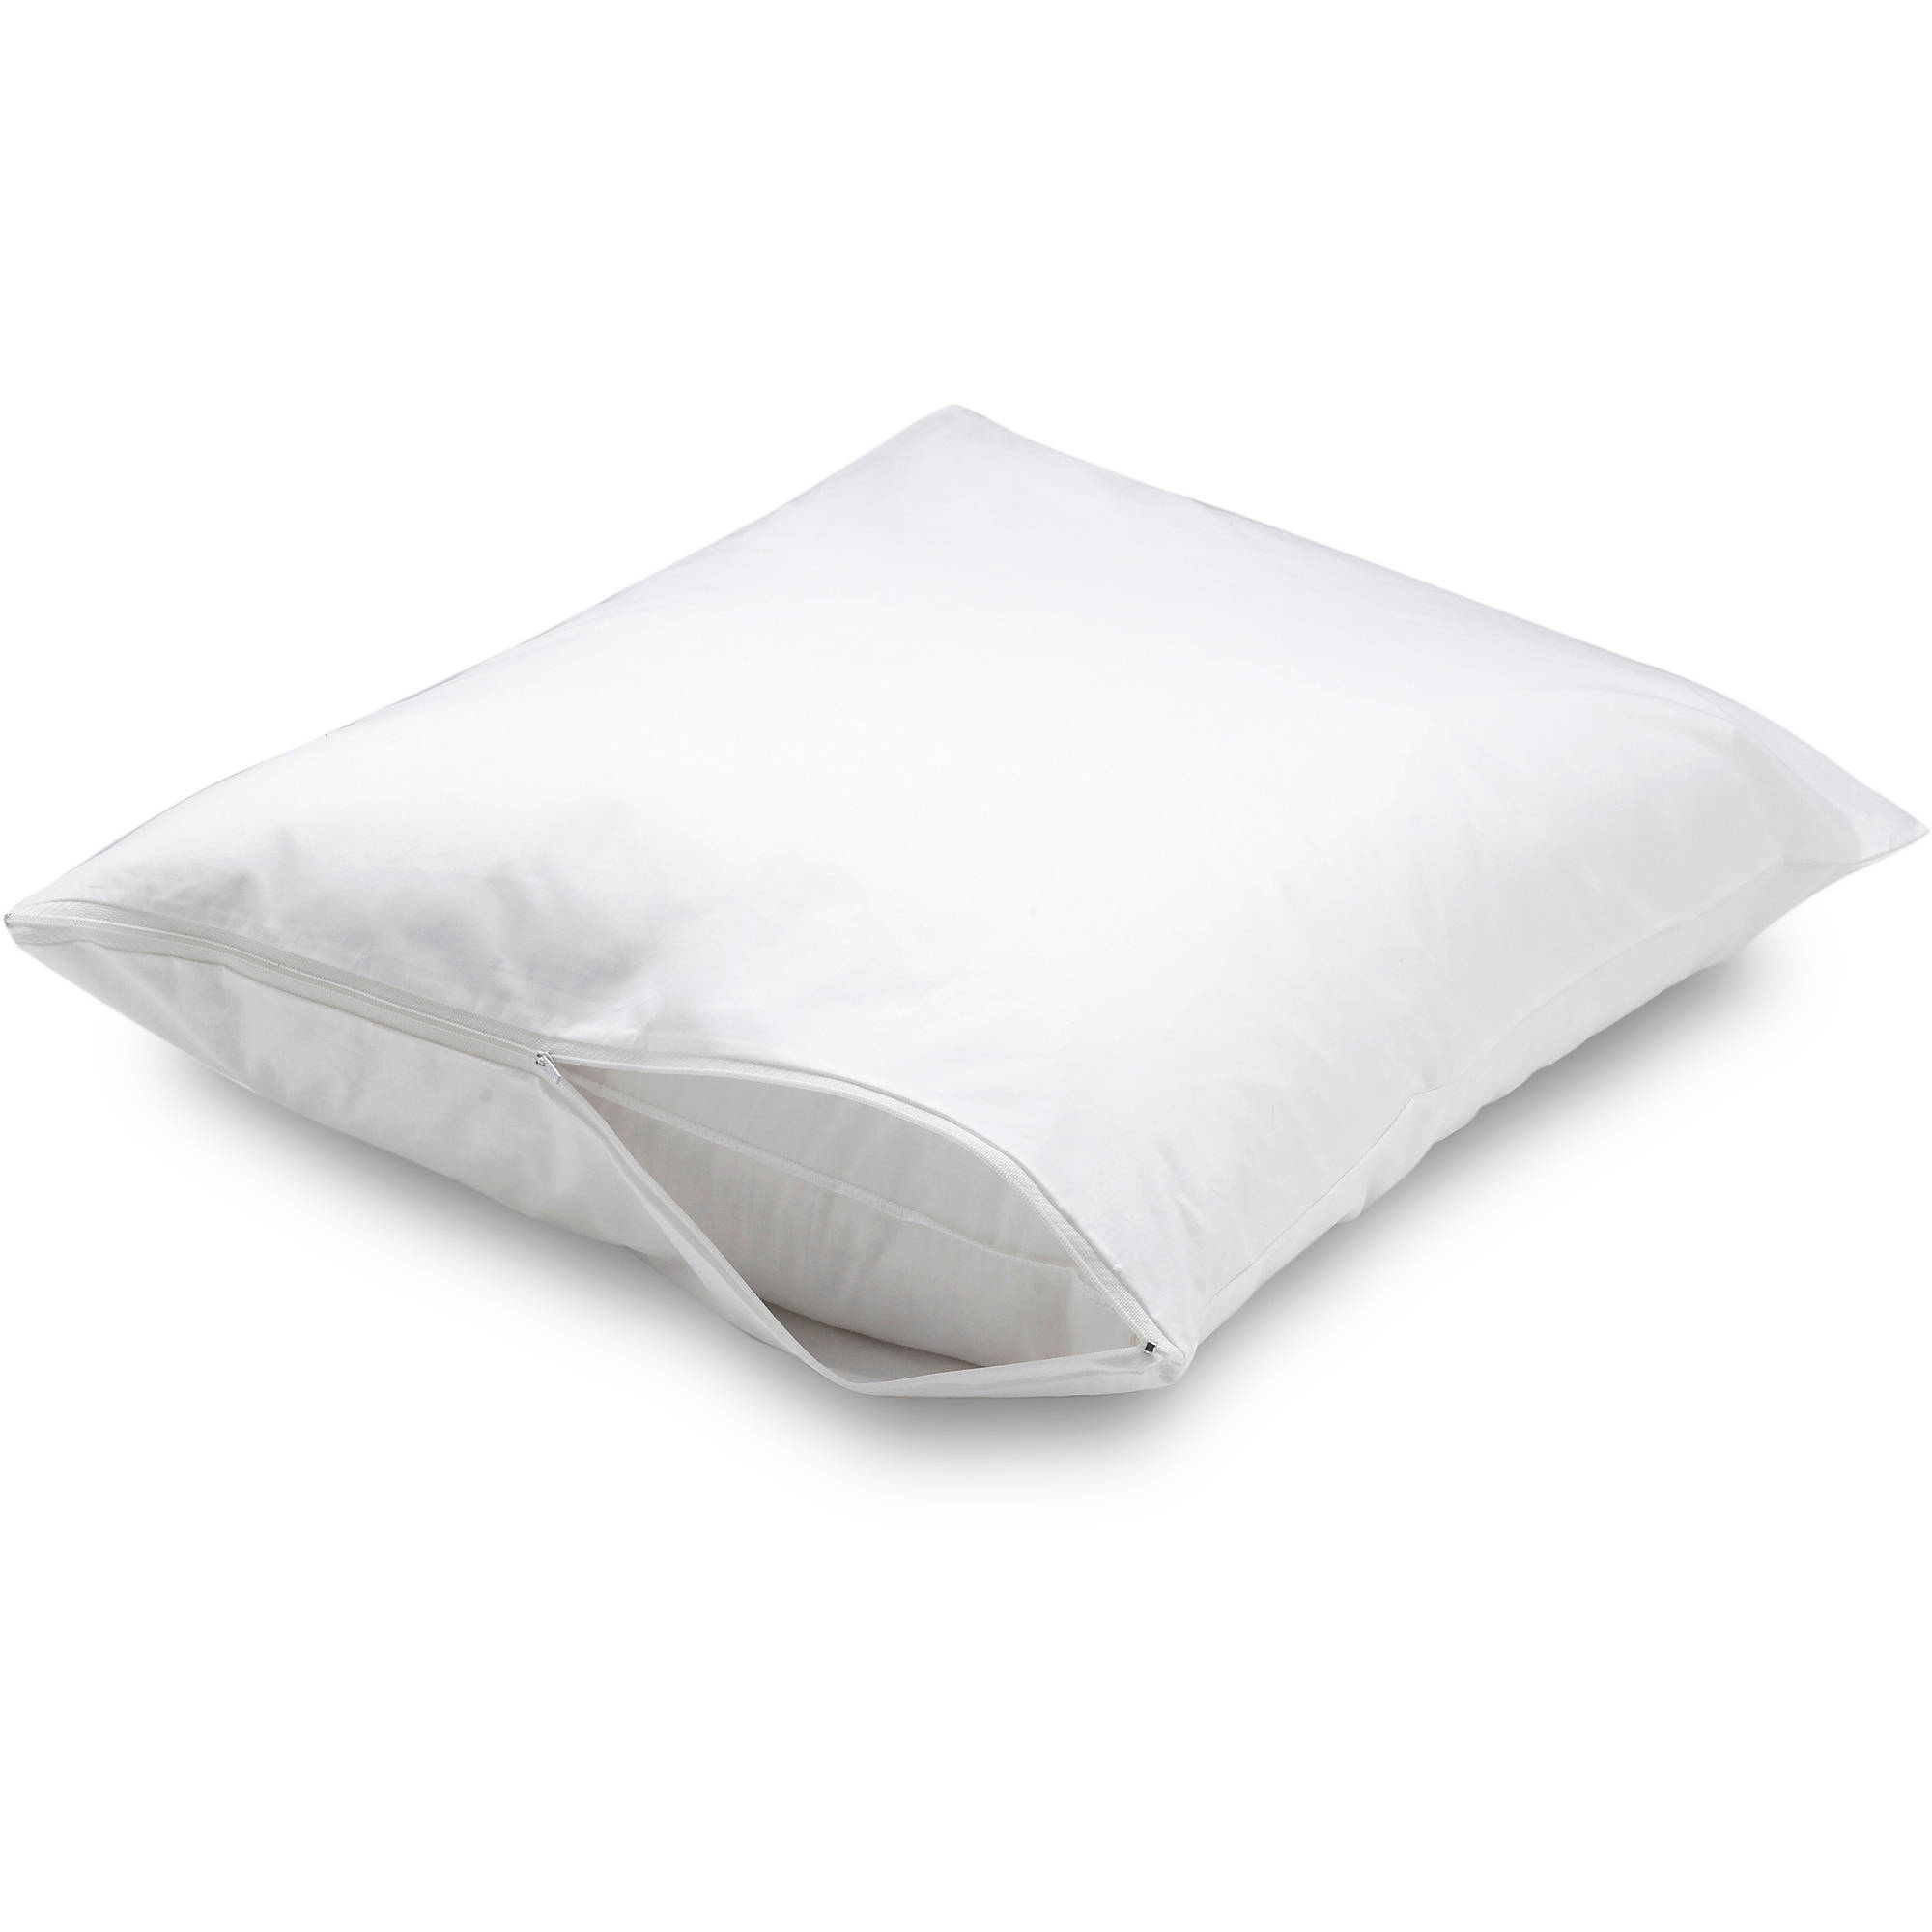 AllerEase Waterproof Pillow Cover by American Textile Company